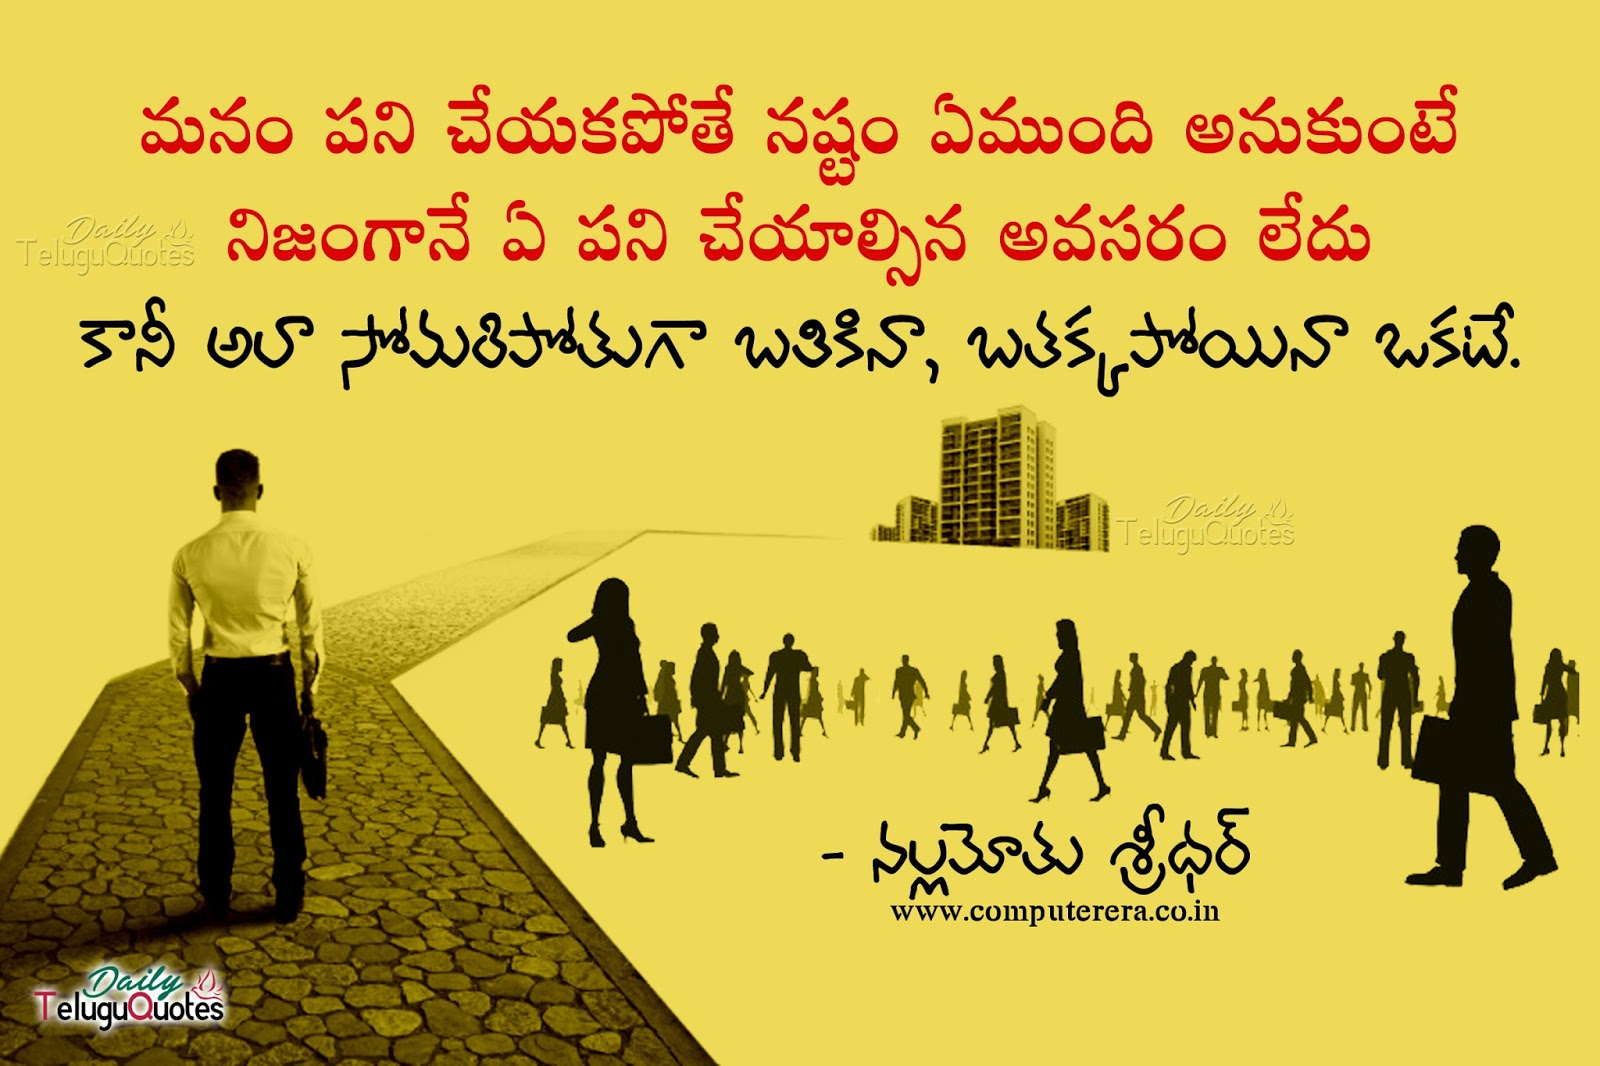 Motivational Messages Nallamothu Sridhar Telugu Motivational Words And Messages